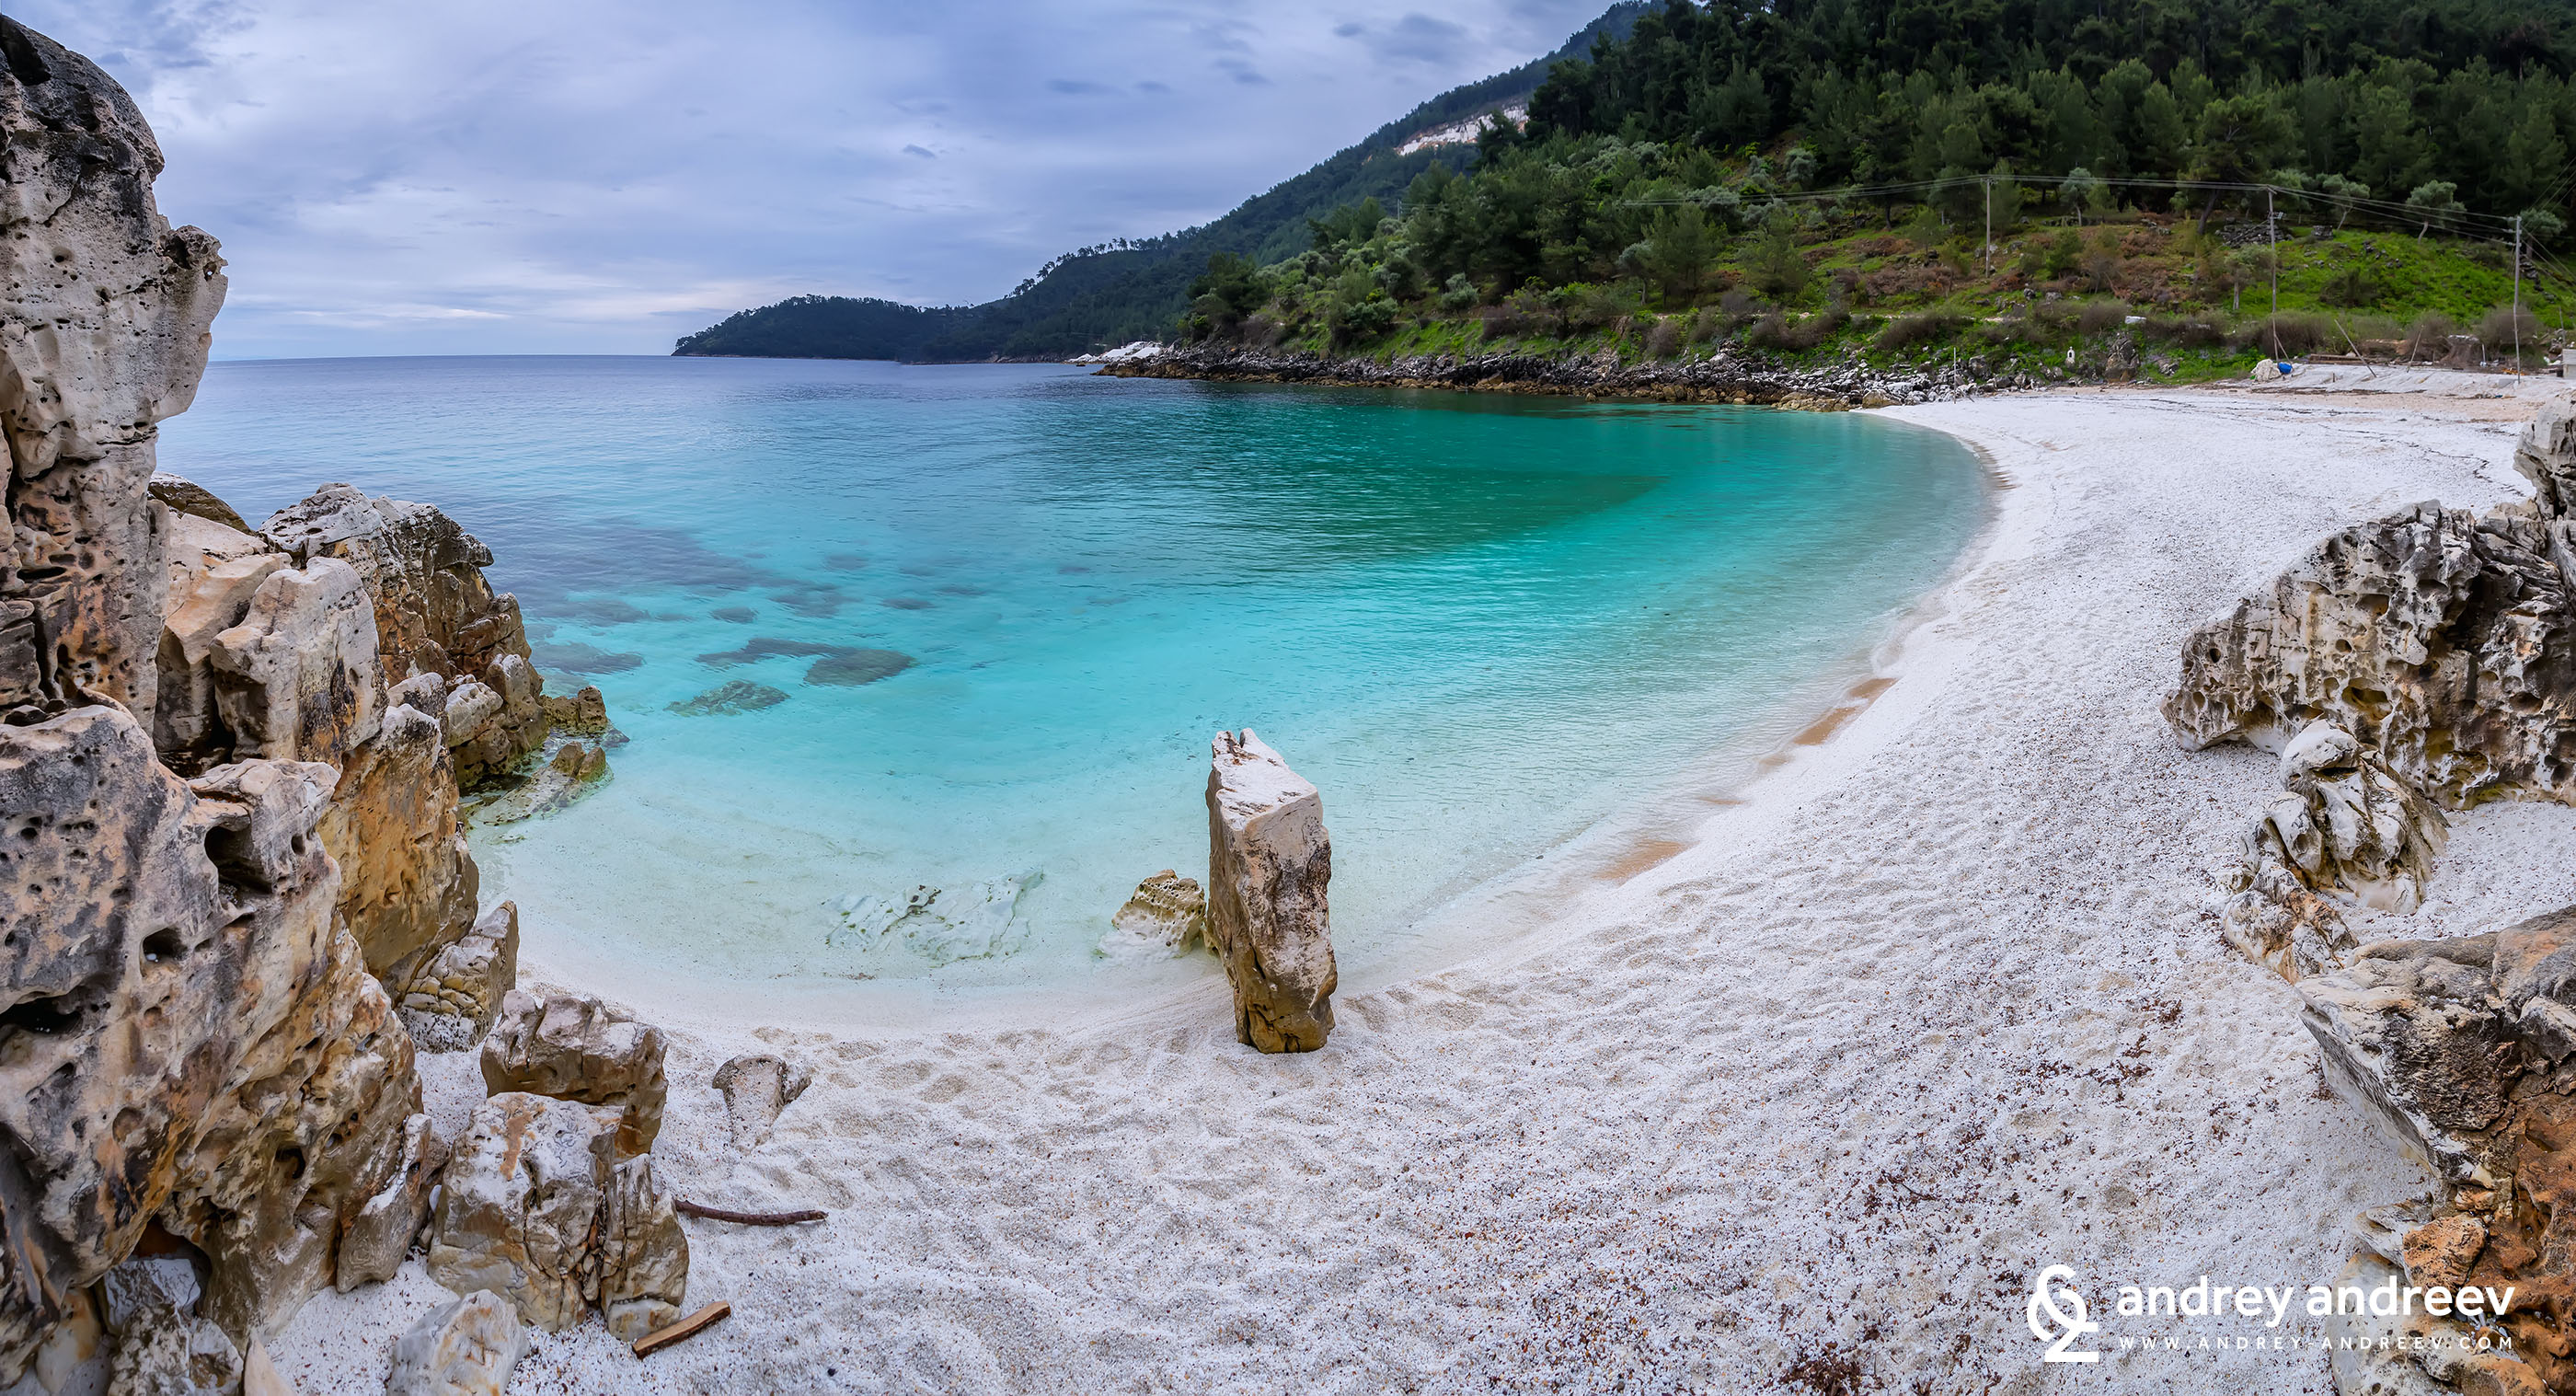 Marble beach (Saliara) - Thassos, Greece